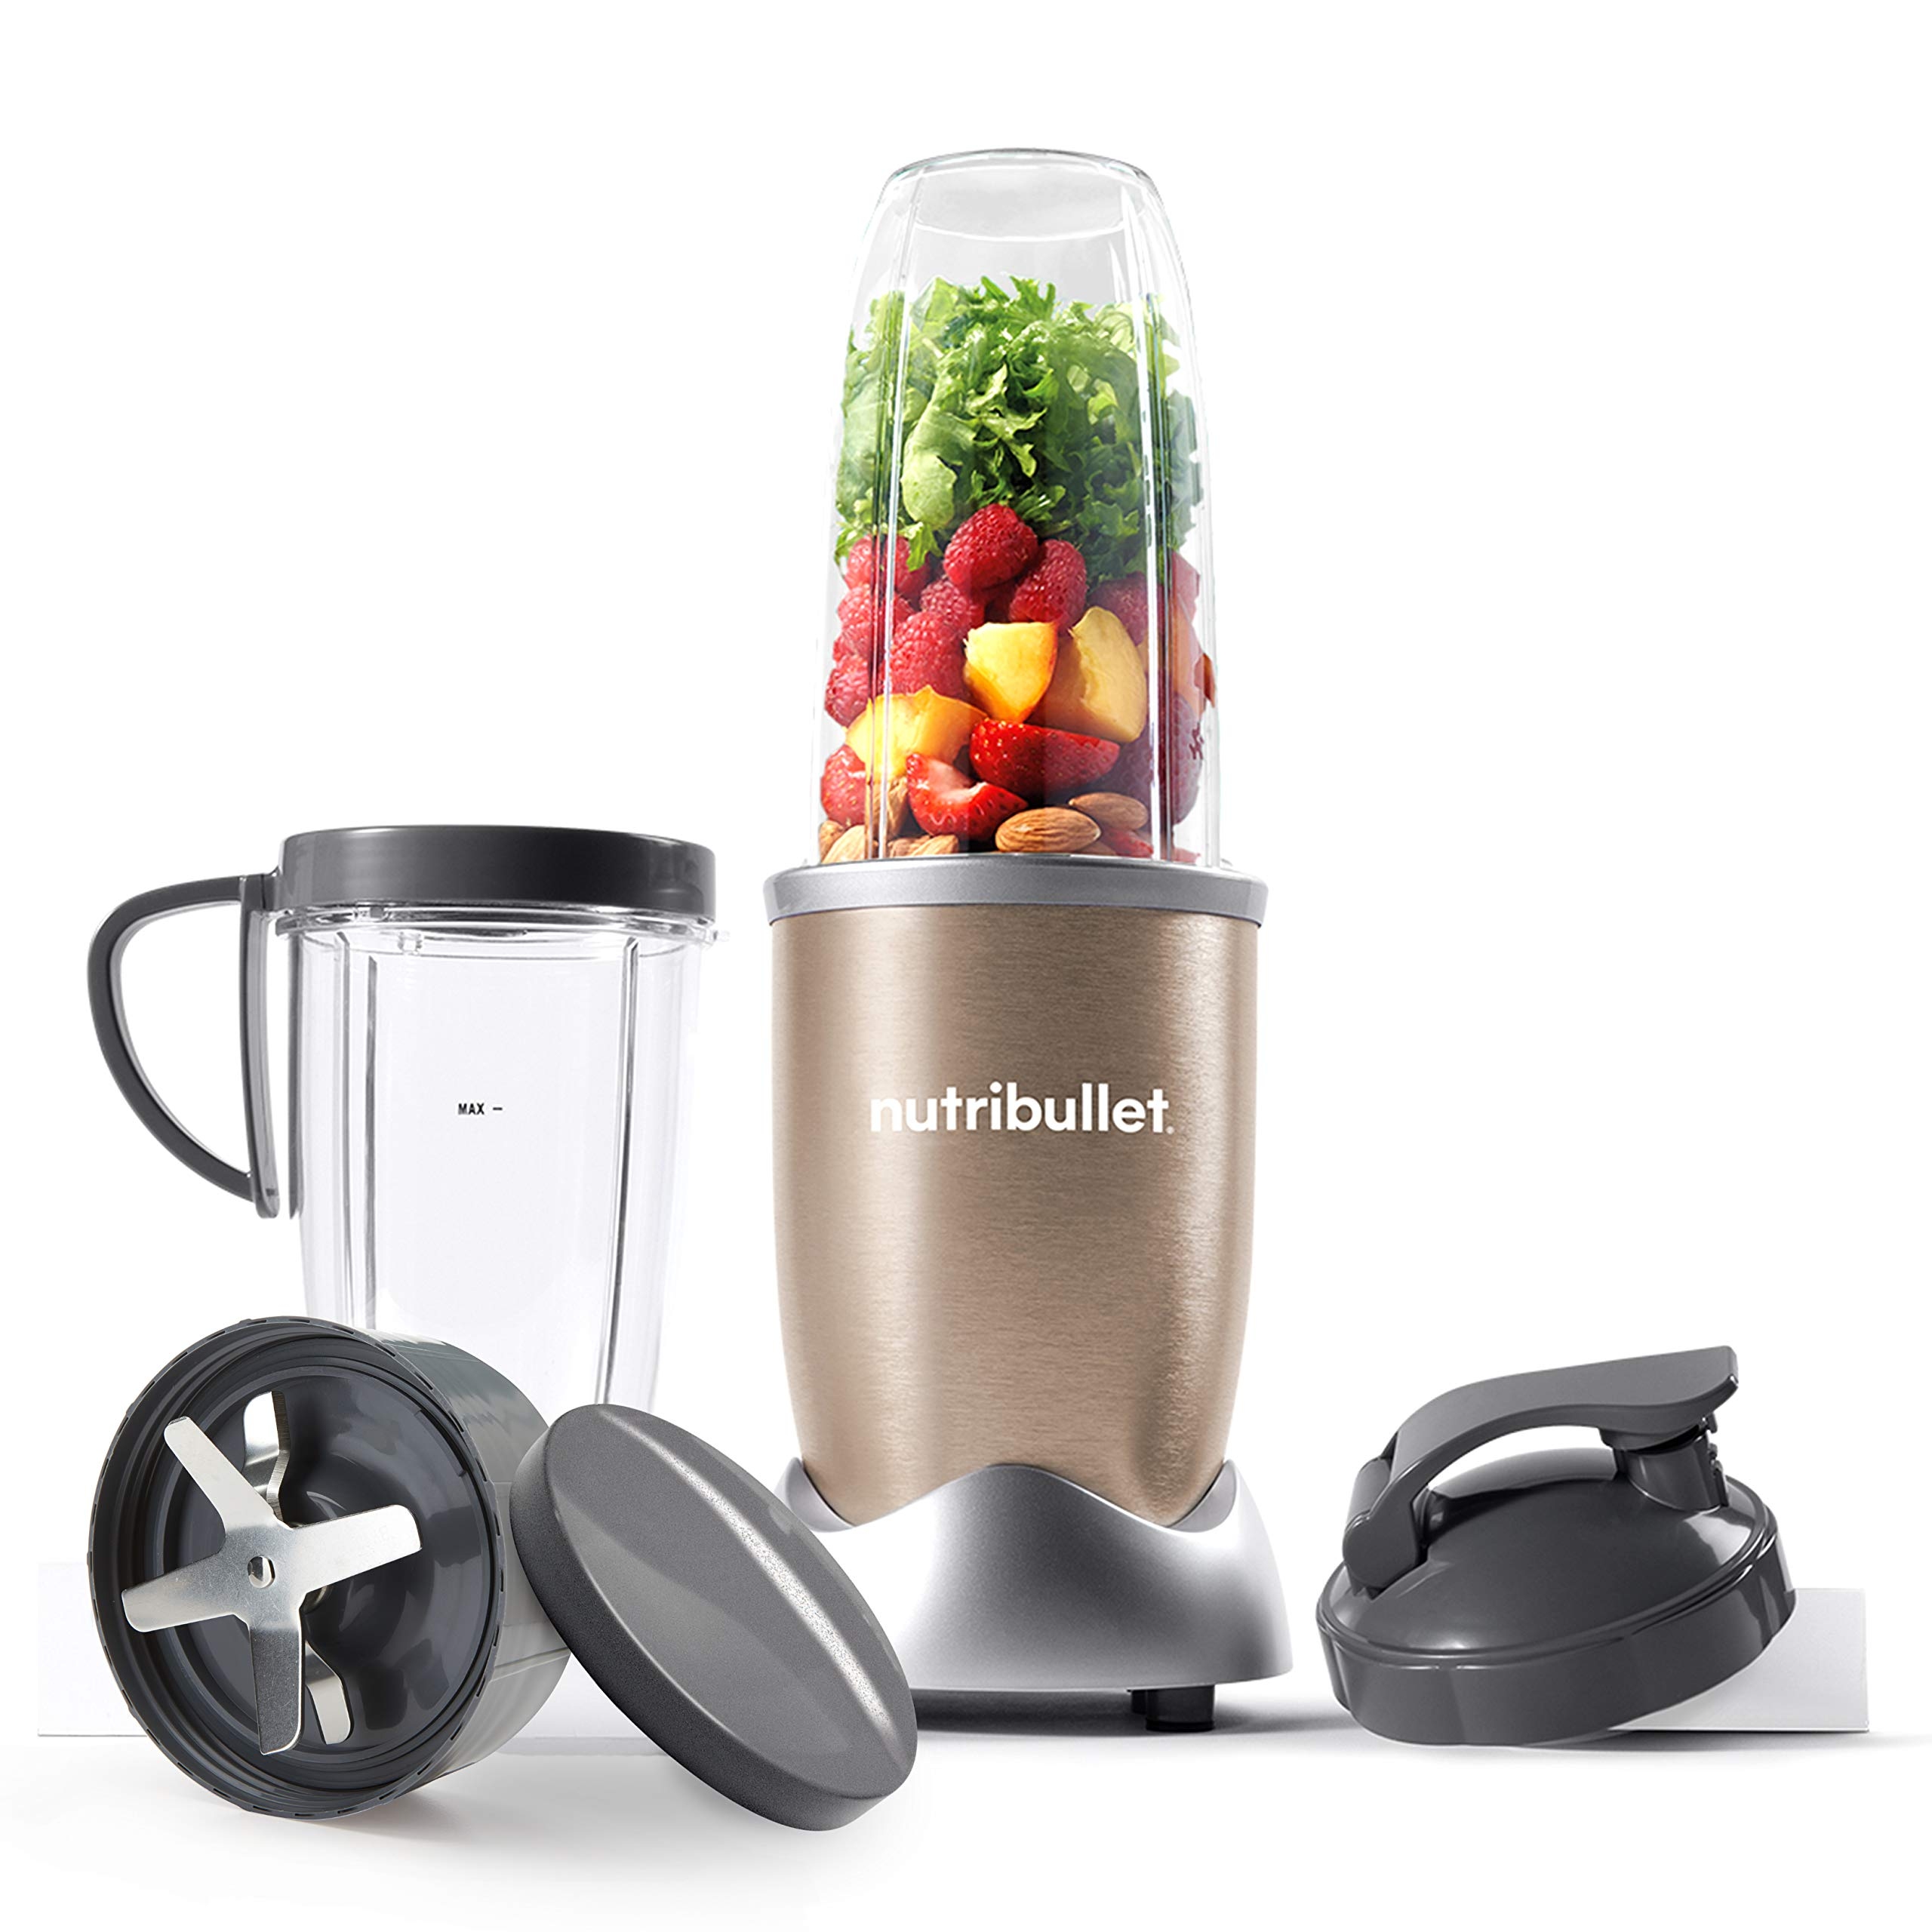 NutriBullet 900W Blender Champagne Multi-Function Cold Beverage Smoothie Maker – 2 Cup Sizes and Stay Fresh Lid